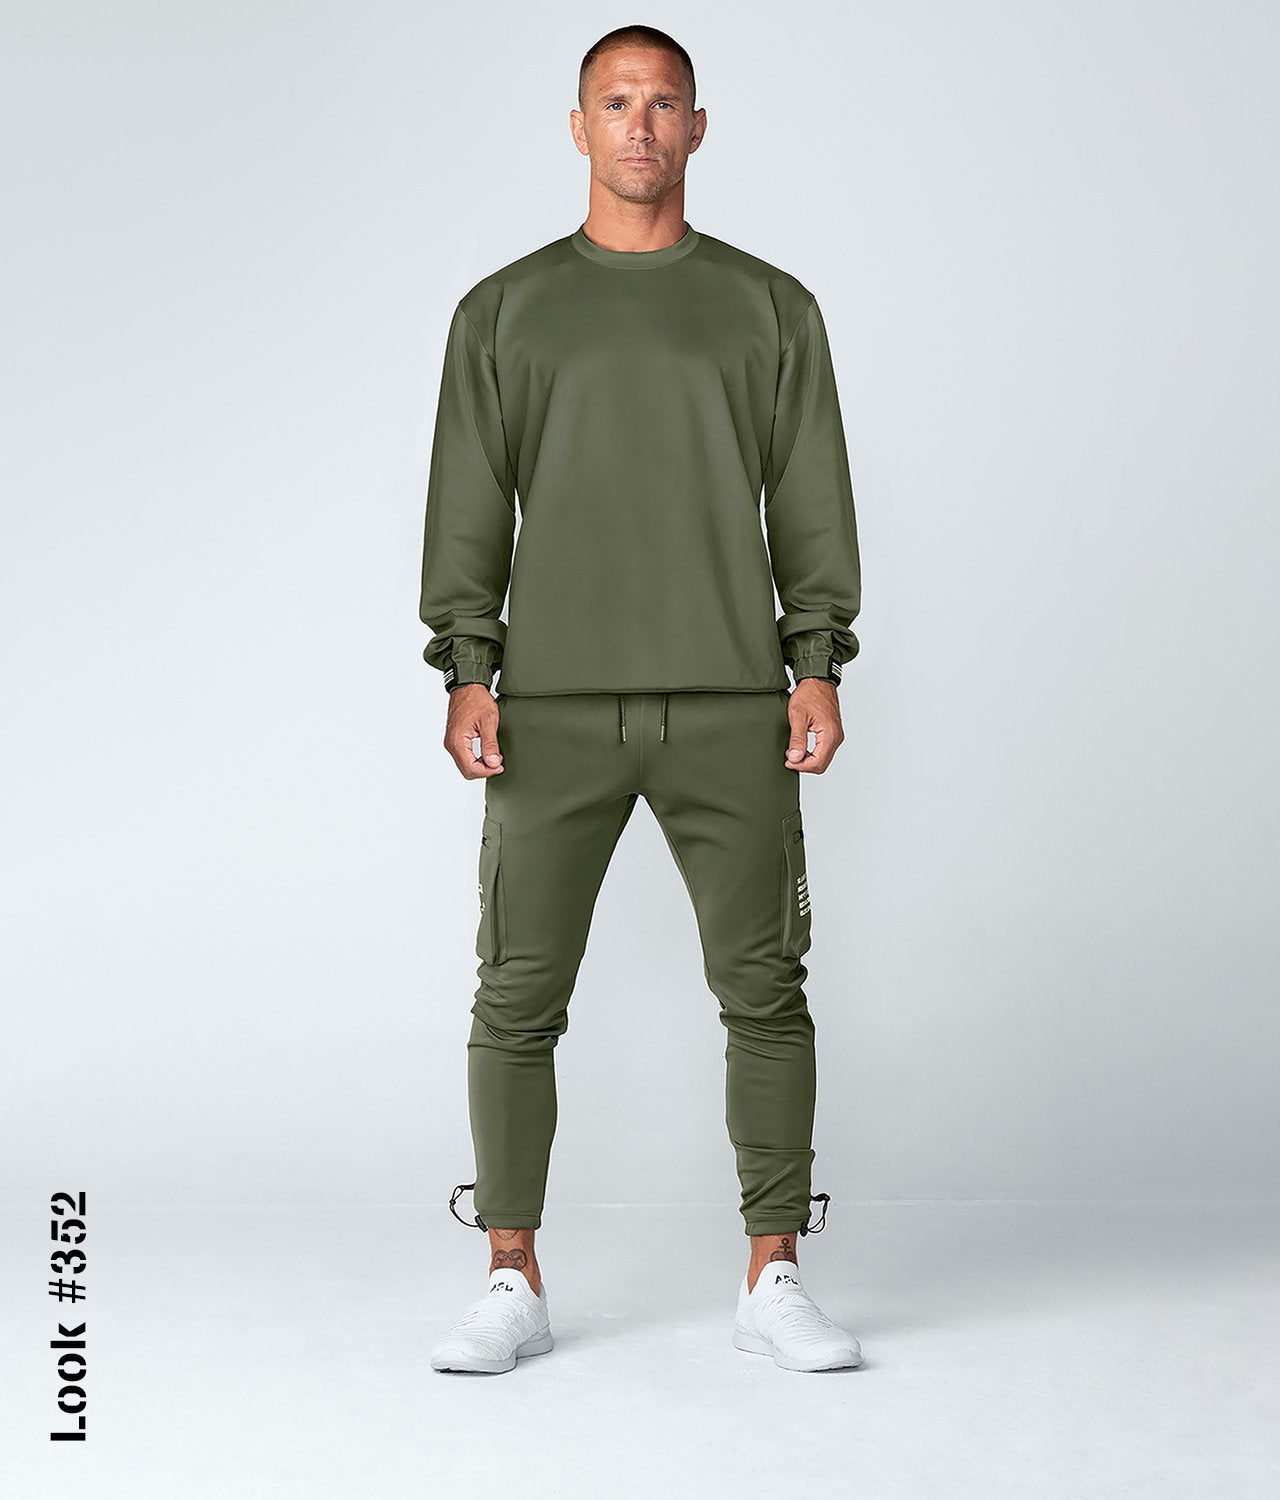 Born Tough United Kingdom Momentum Fitted Cargo Sweat-Wicking Gym Workout Jogger Pants For Men Military Green